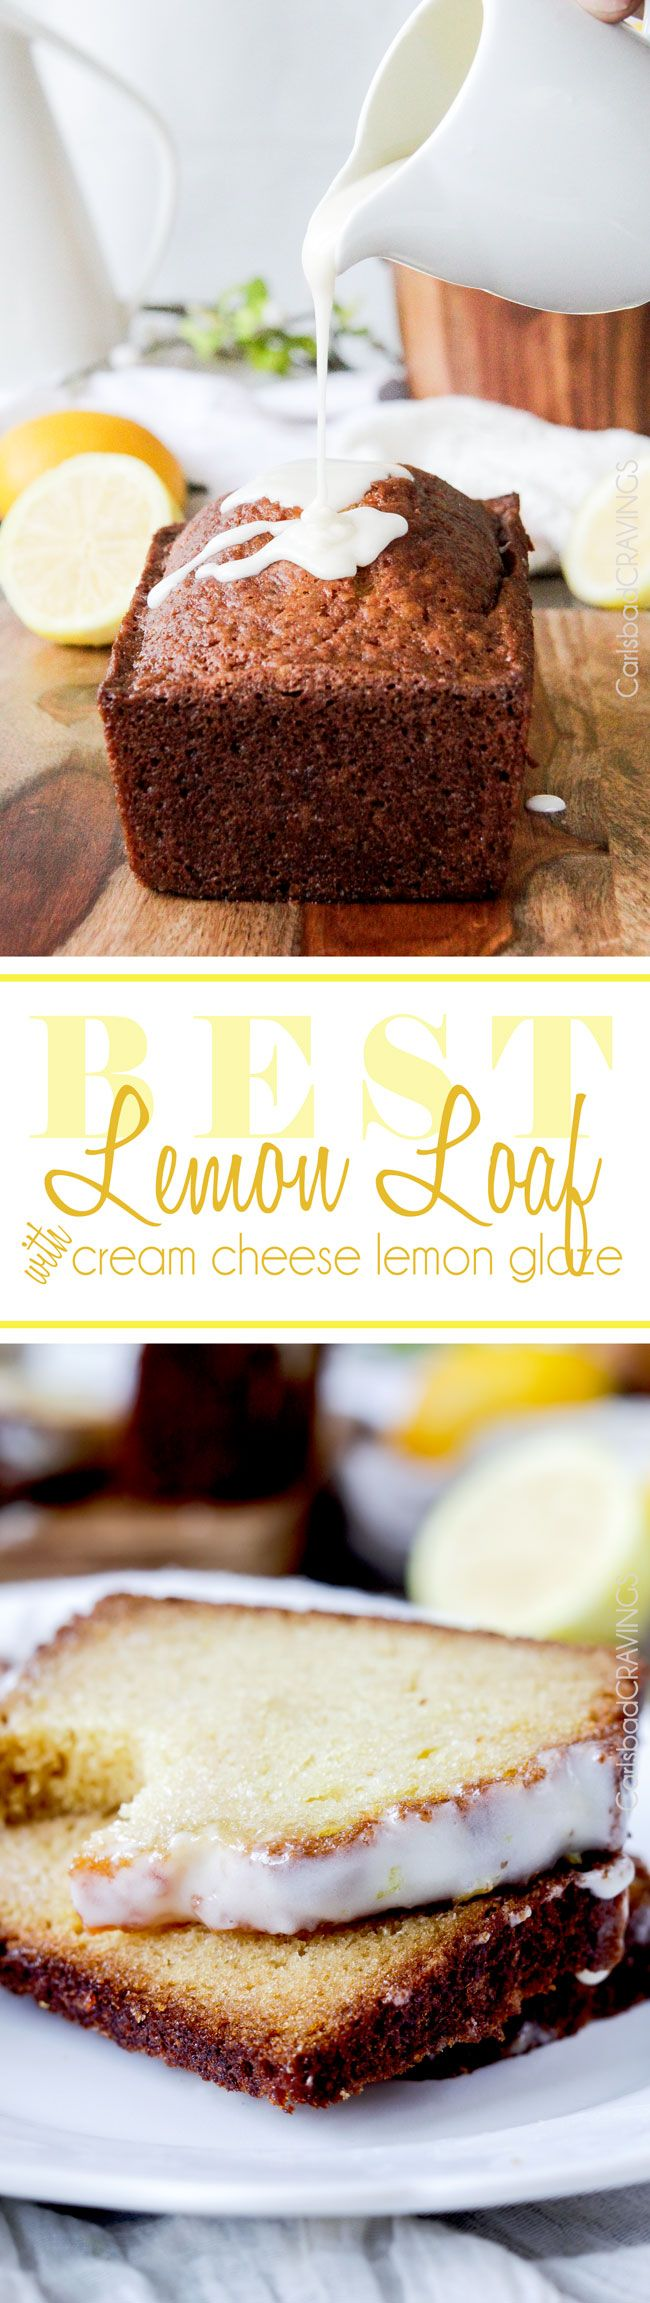 Best Lemon Loaf with Cream Cheese Lemon Glaze - Packed with three types of lemon, topped with the most tantalizing glaze for the perfect sweet citrus balance